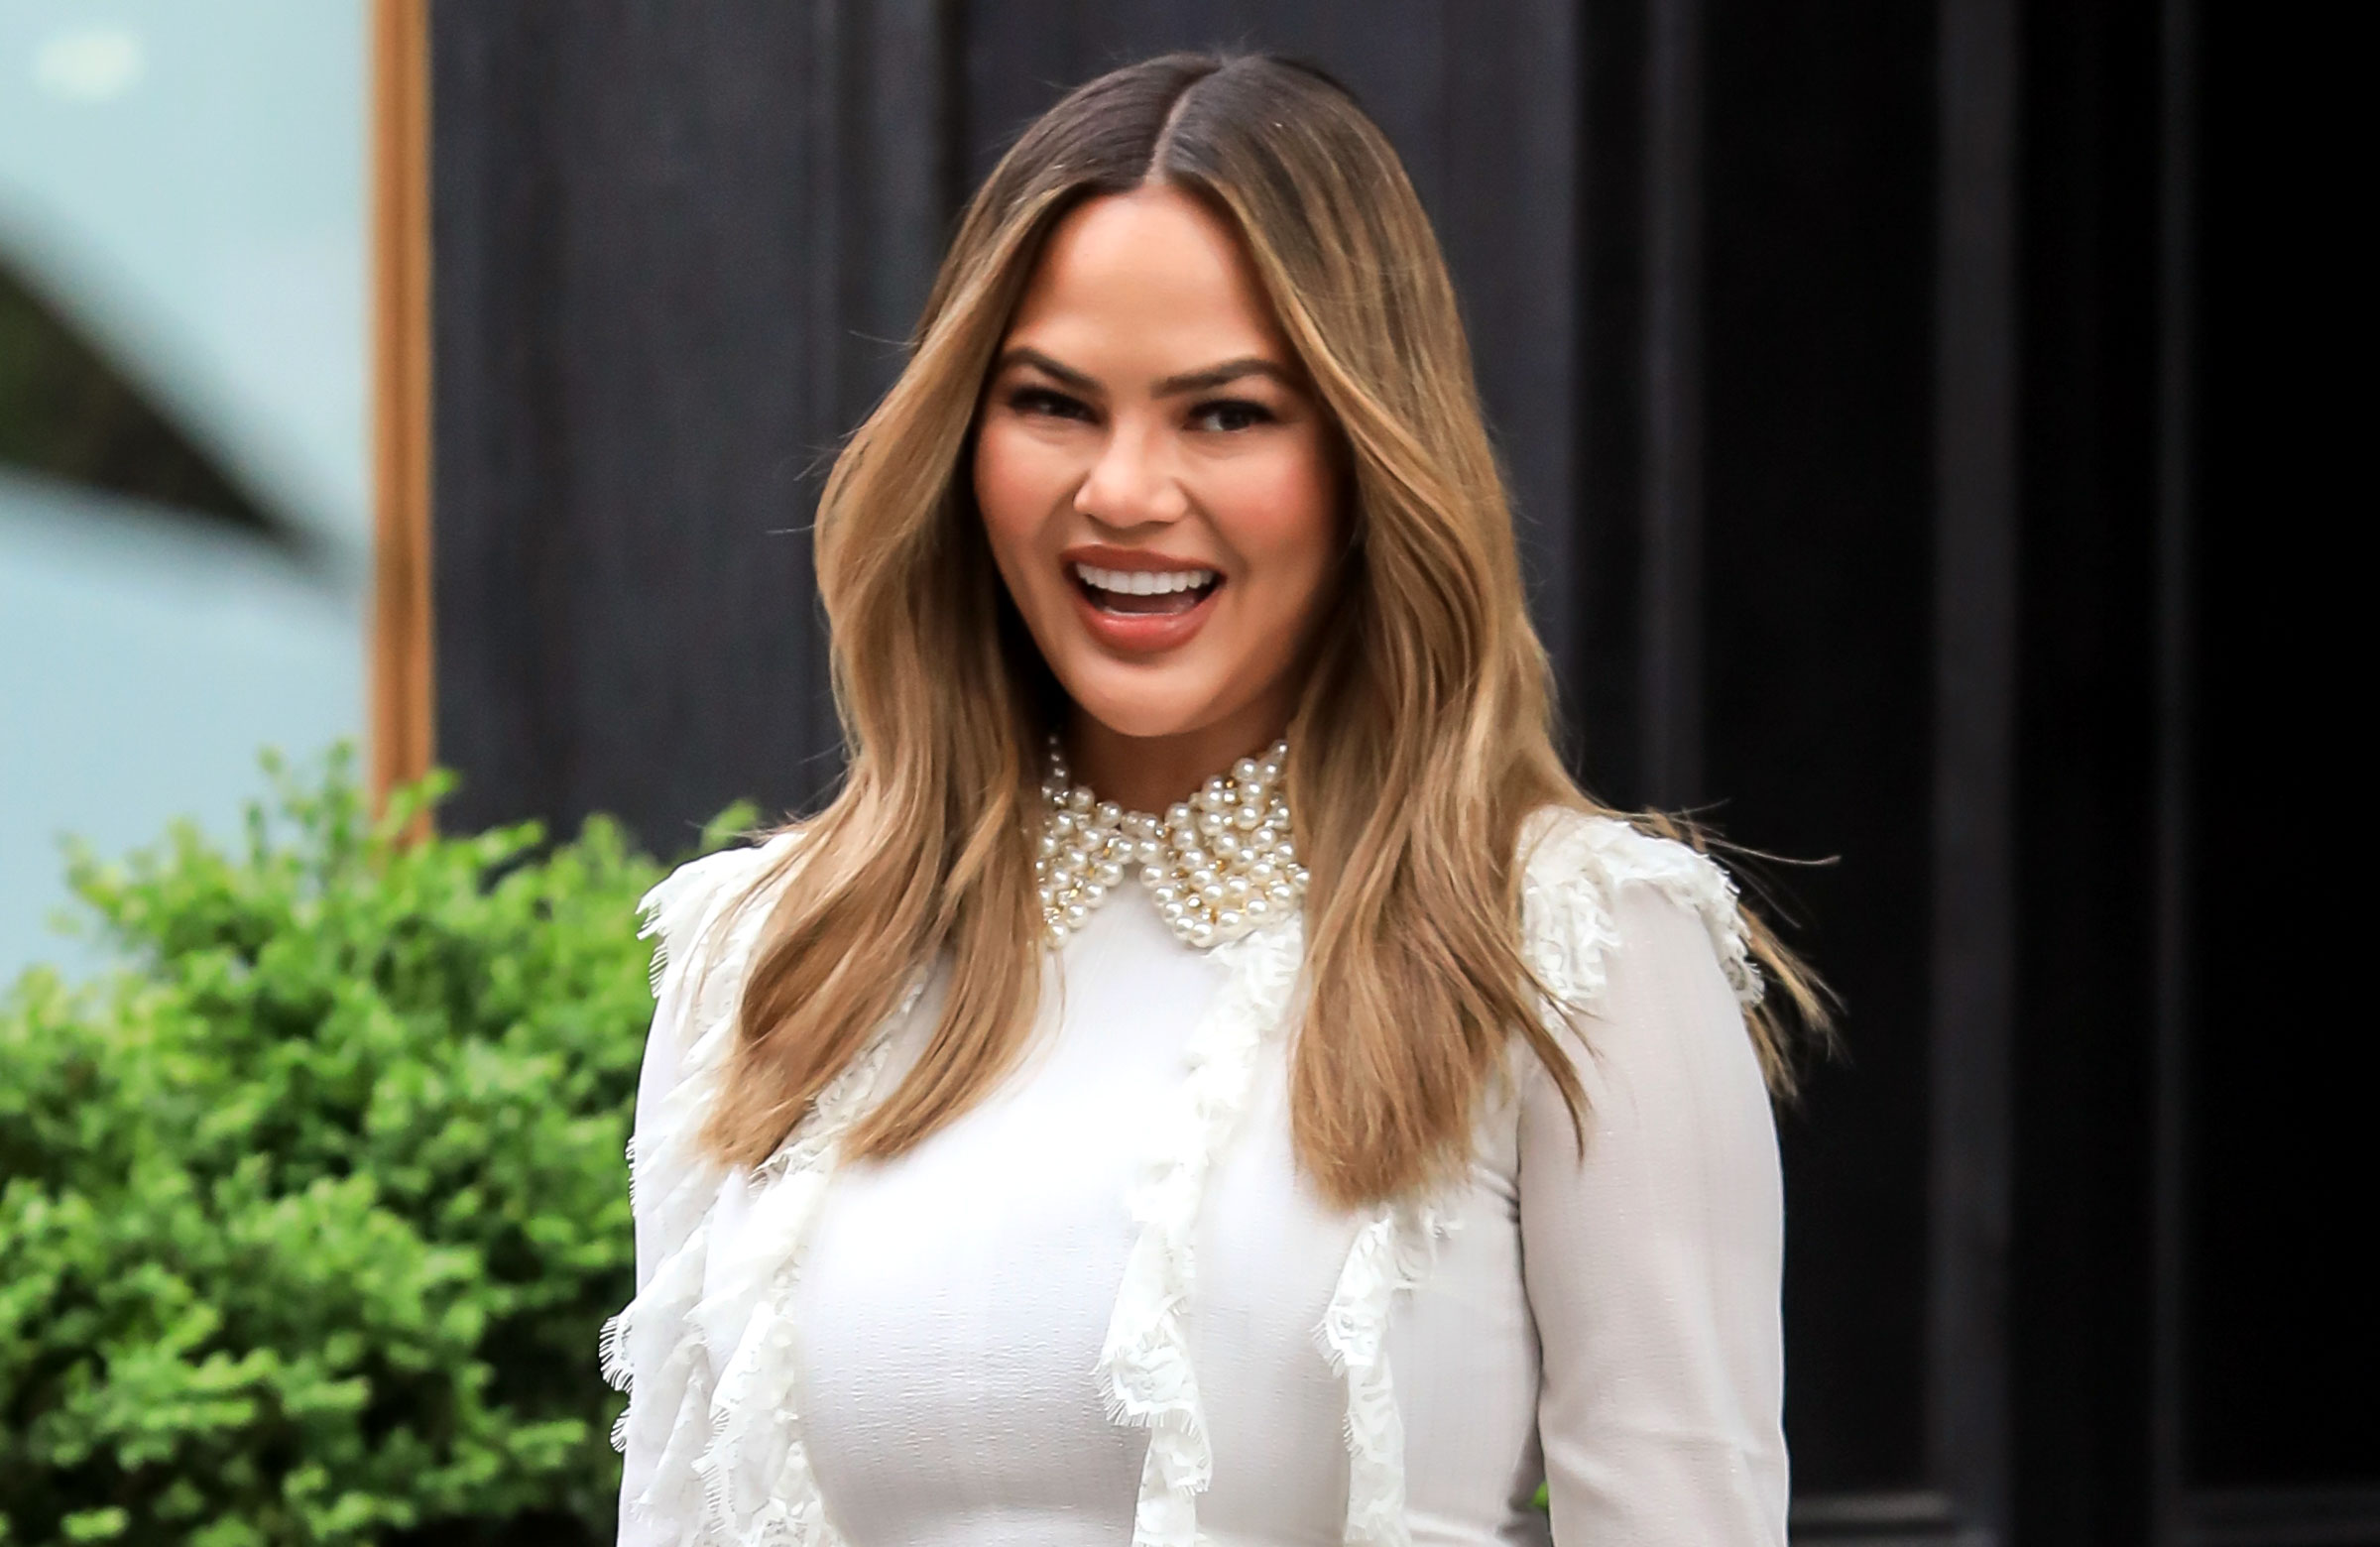 Chrissy Teigen Explains Personal Significance Behind New Cravings Pieces - Chrissy Teigen is seen at 'Today' Show on May 02, 2019 in New York City.